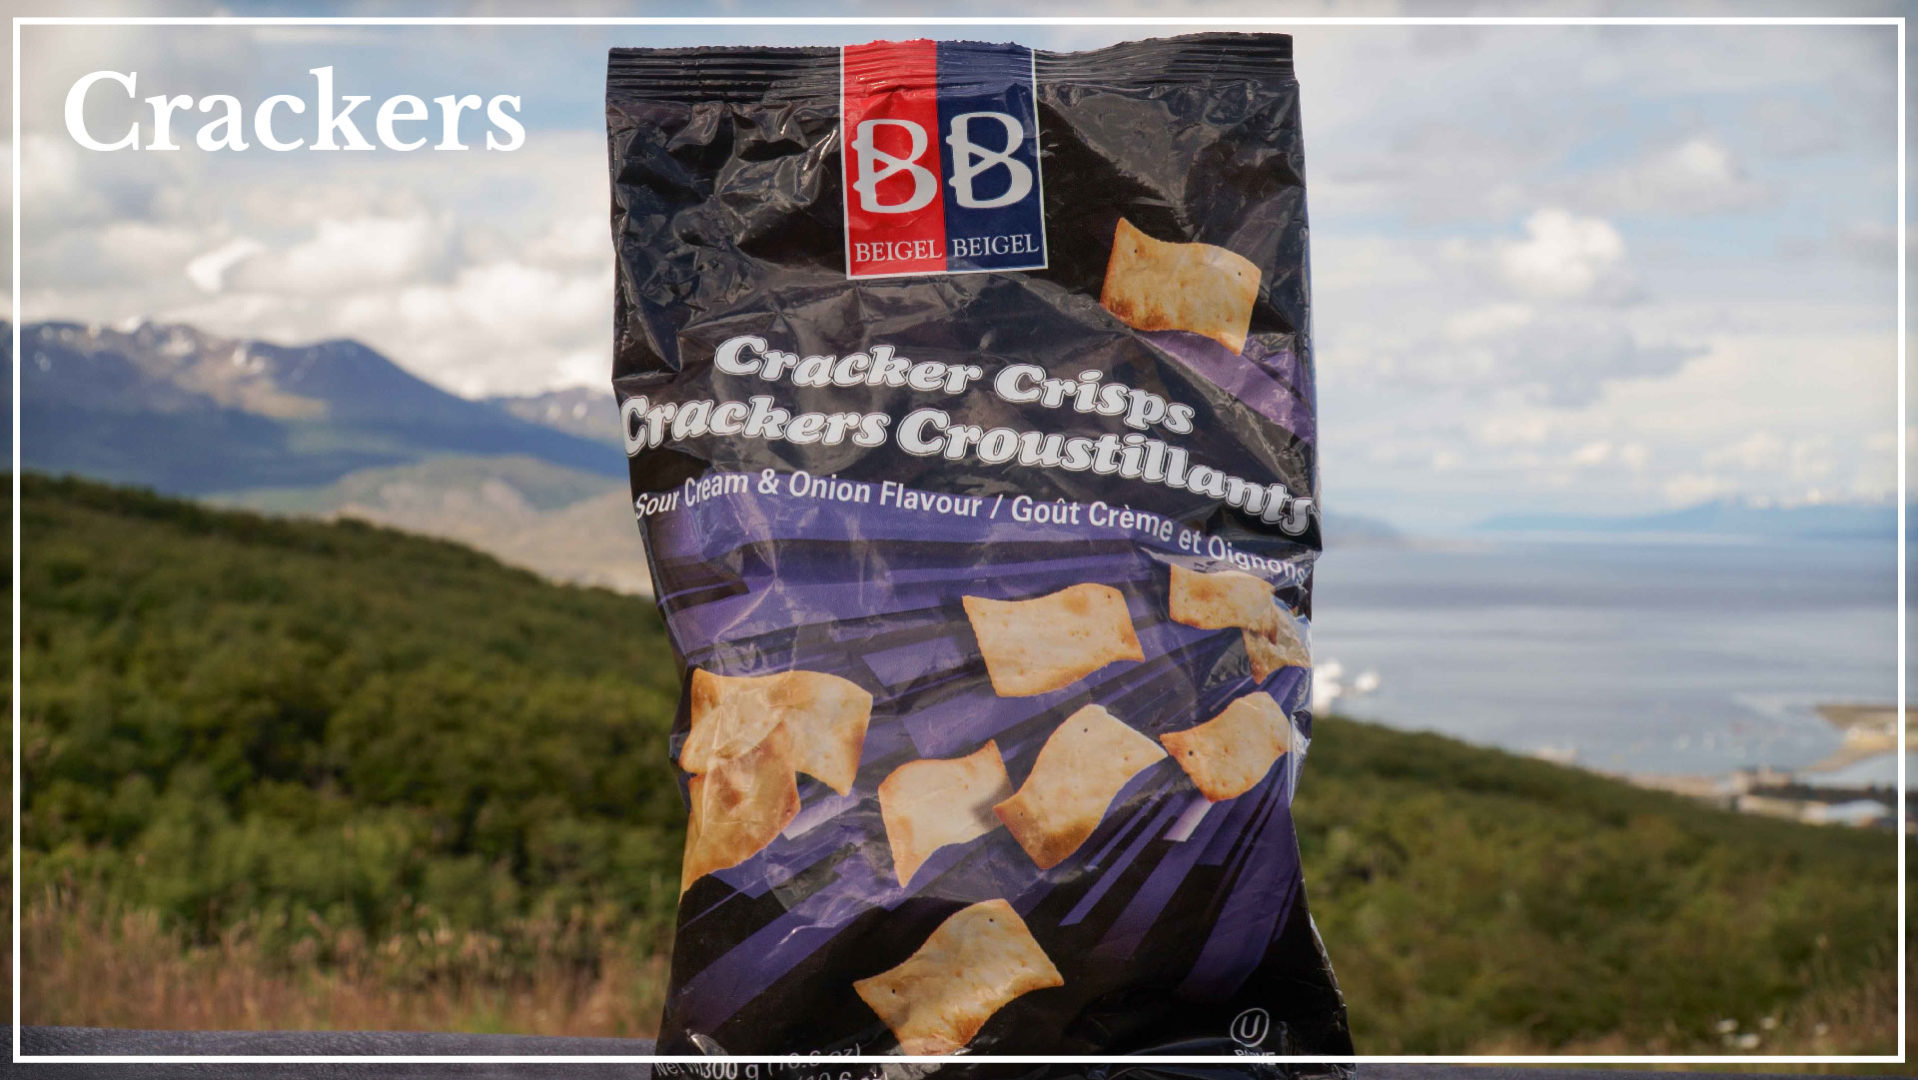 Onion and cream flavor crackers